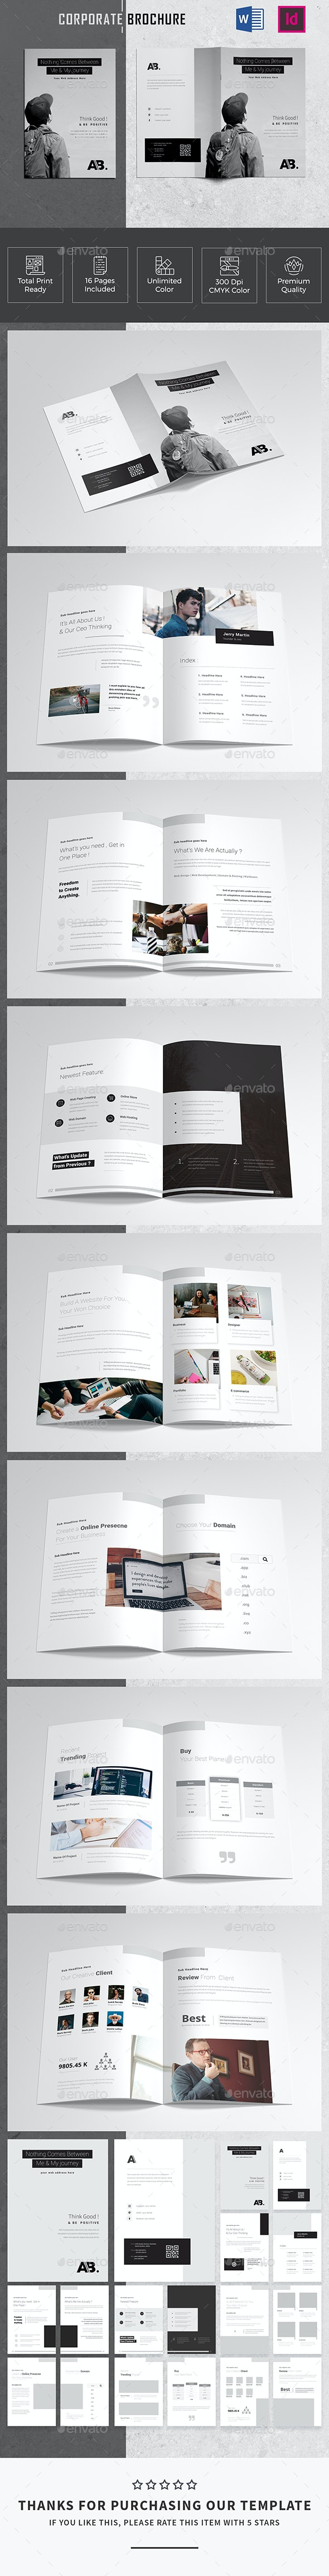 16 Pages Corporate Brochure - Corporate Brochures